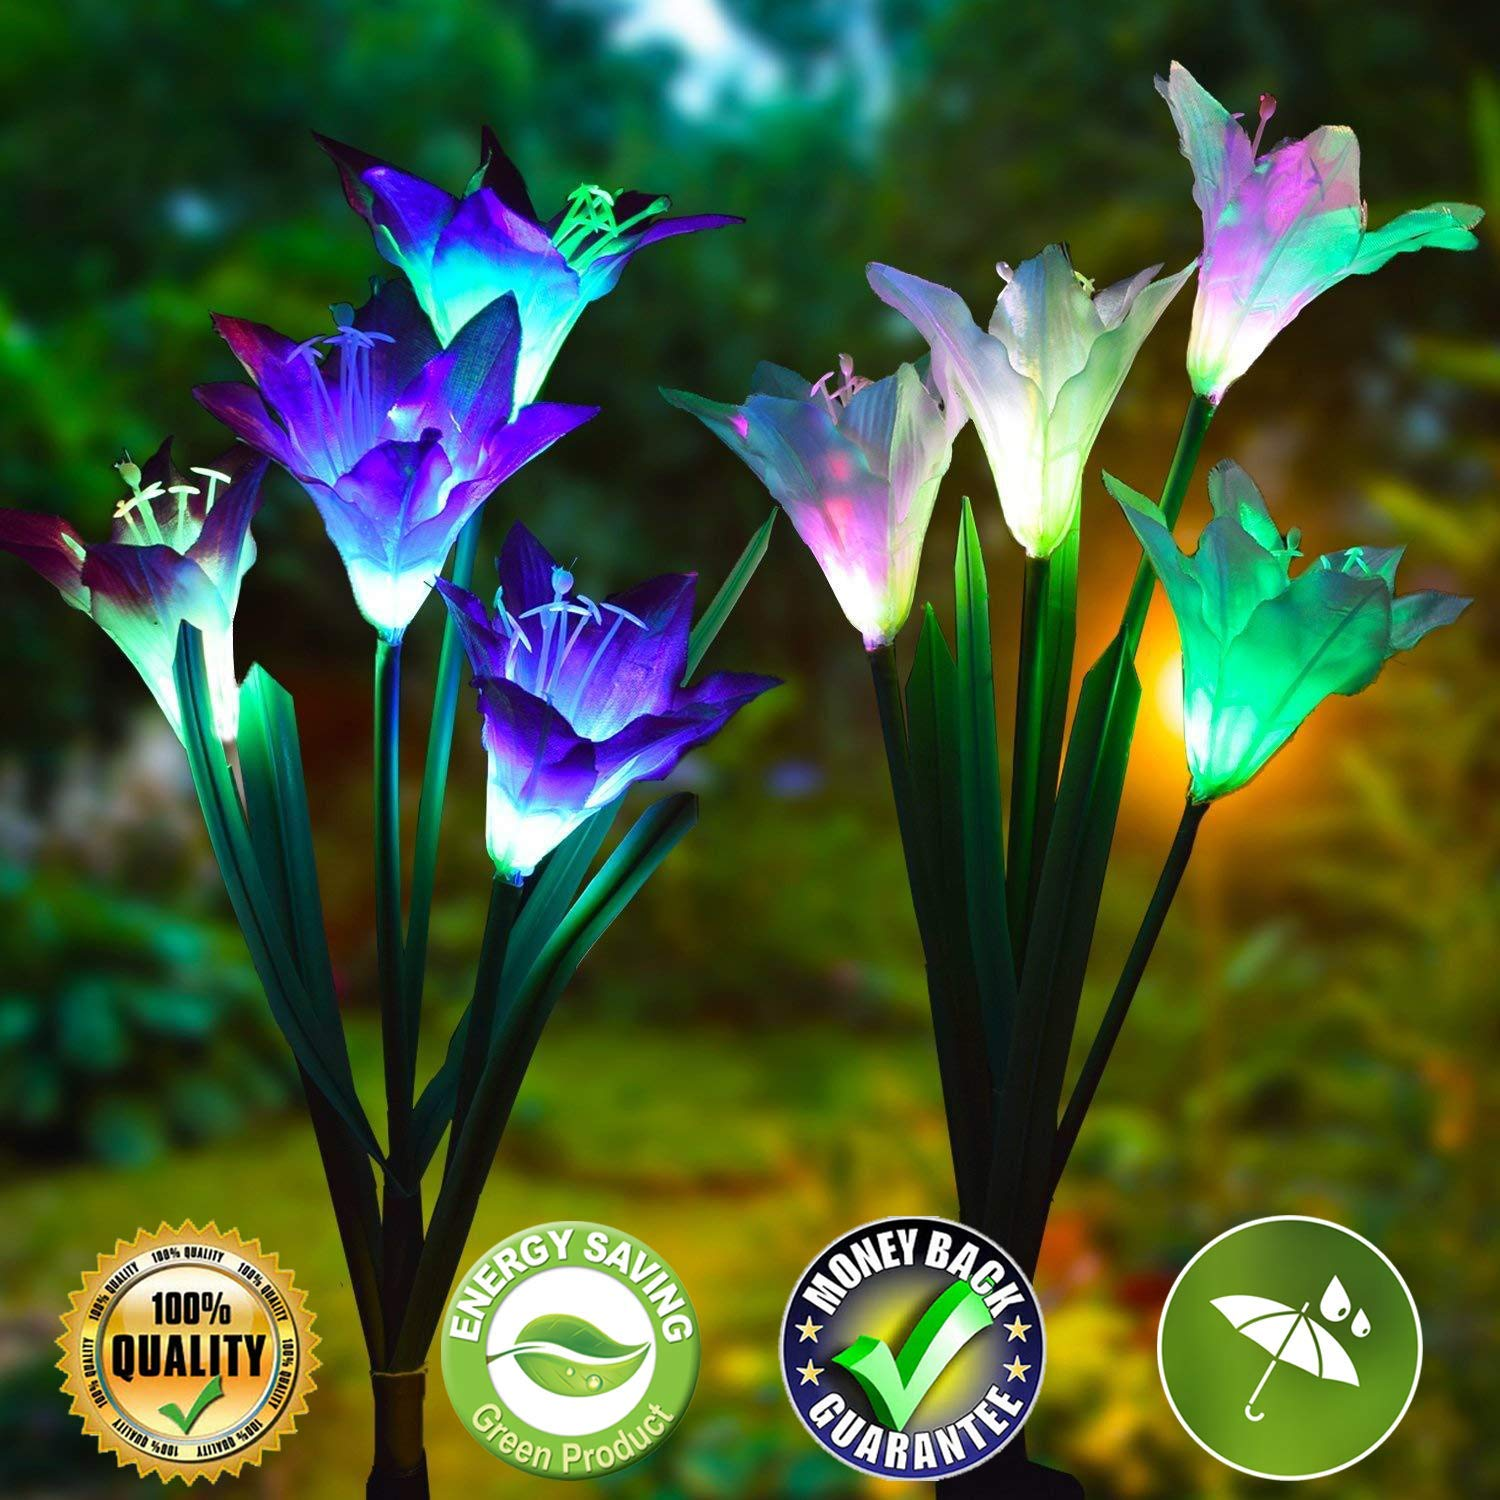 Solar Lights Outdoor Decorative Garden Solar Lights Outdoor Solar Garden Stake Lights 2 Pack Outdoor Garden Solar Lights with 8 Lily Flowers Multi-color Changing Waterproof LED Solar Flower Lights